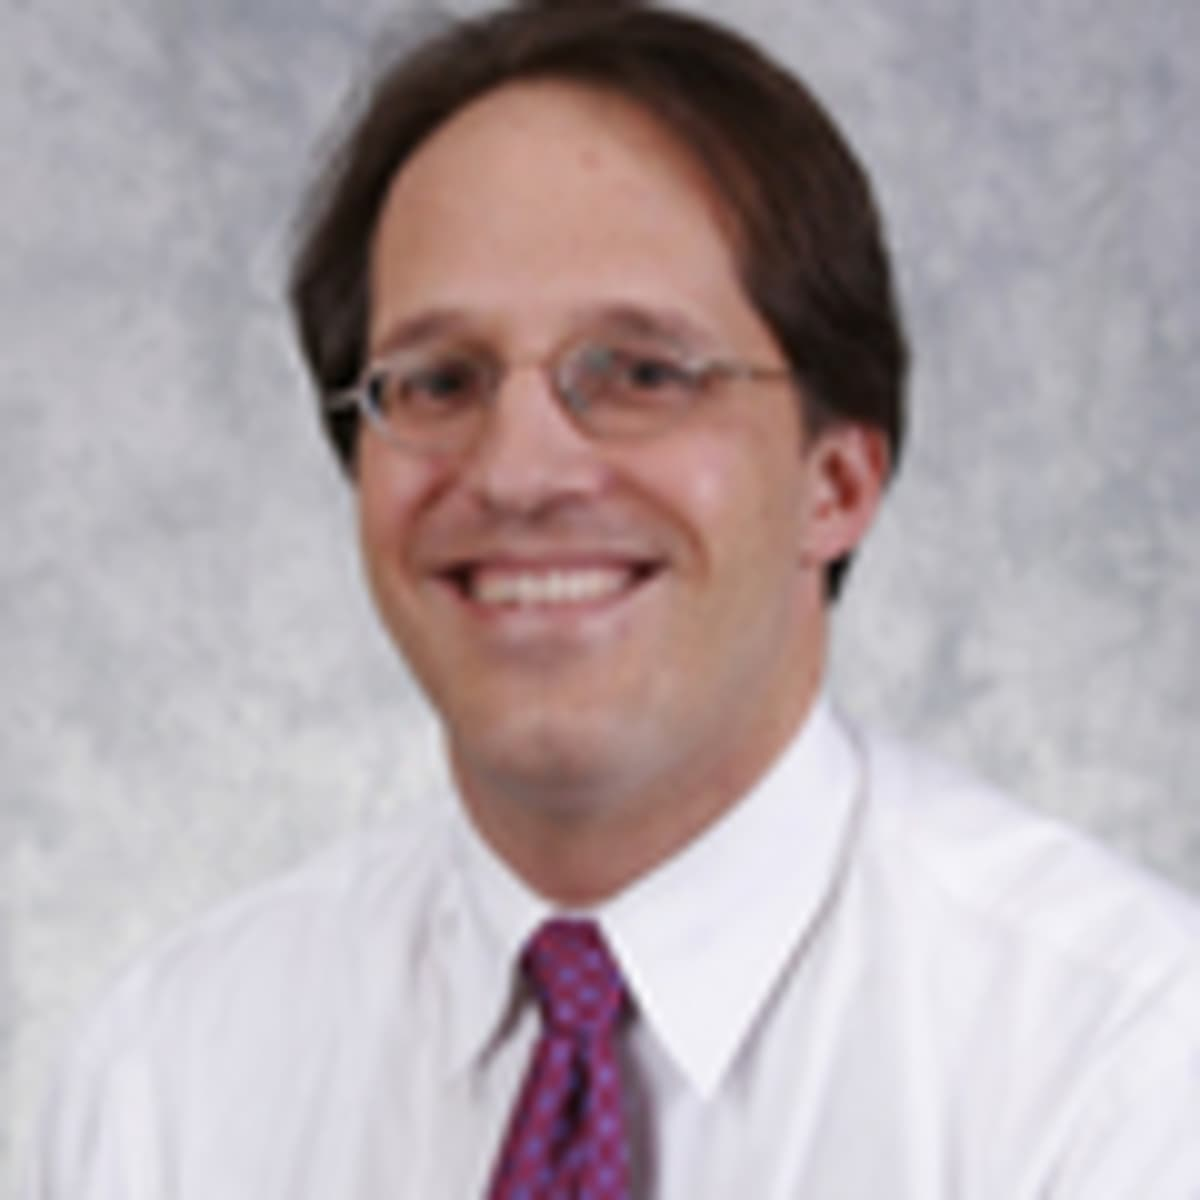 Dr. Michael Scola, MD | Parsippany, NJ | Medical Oncologist